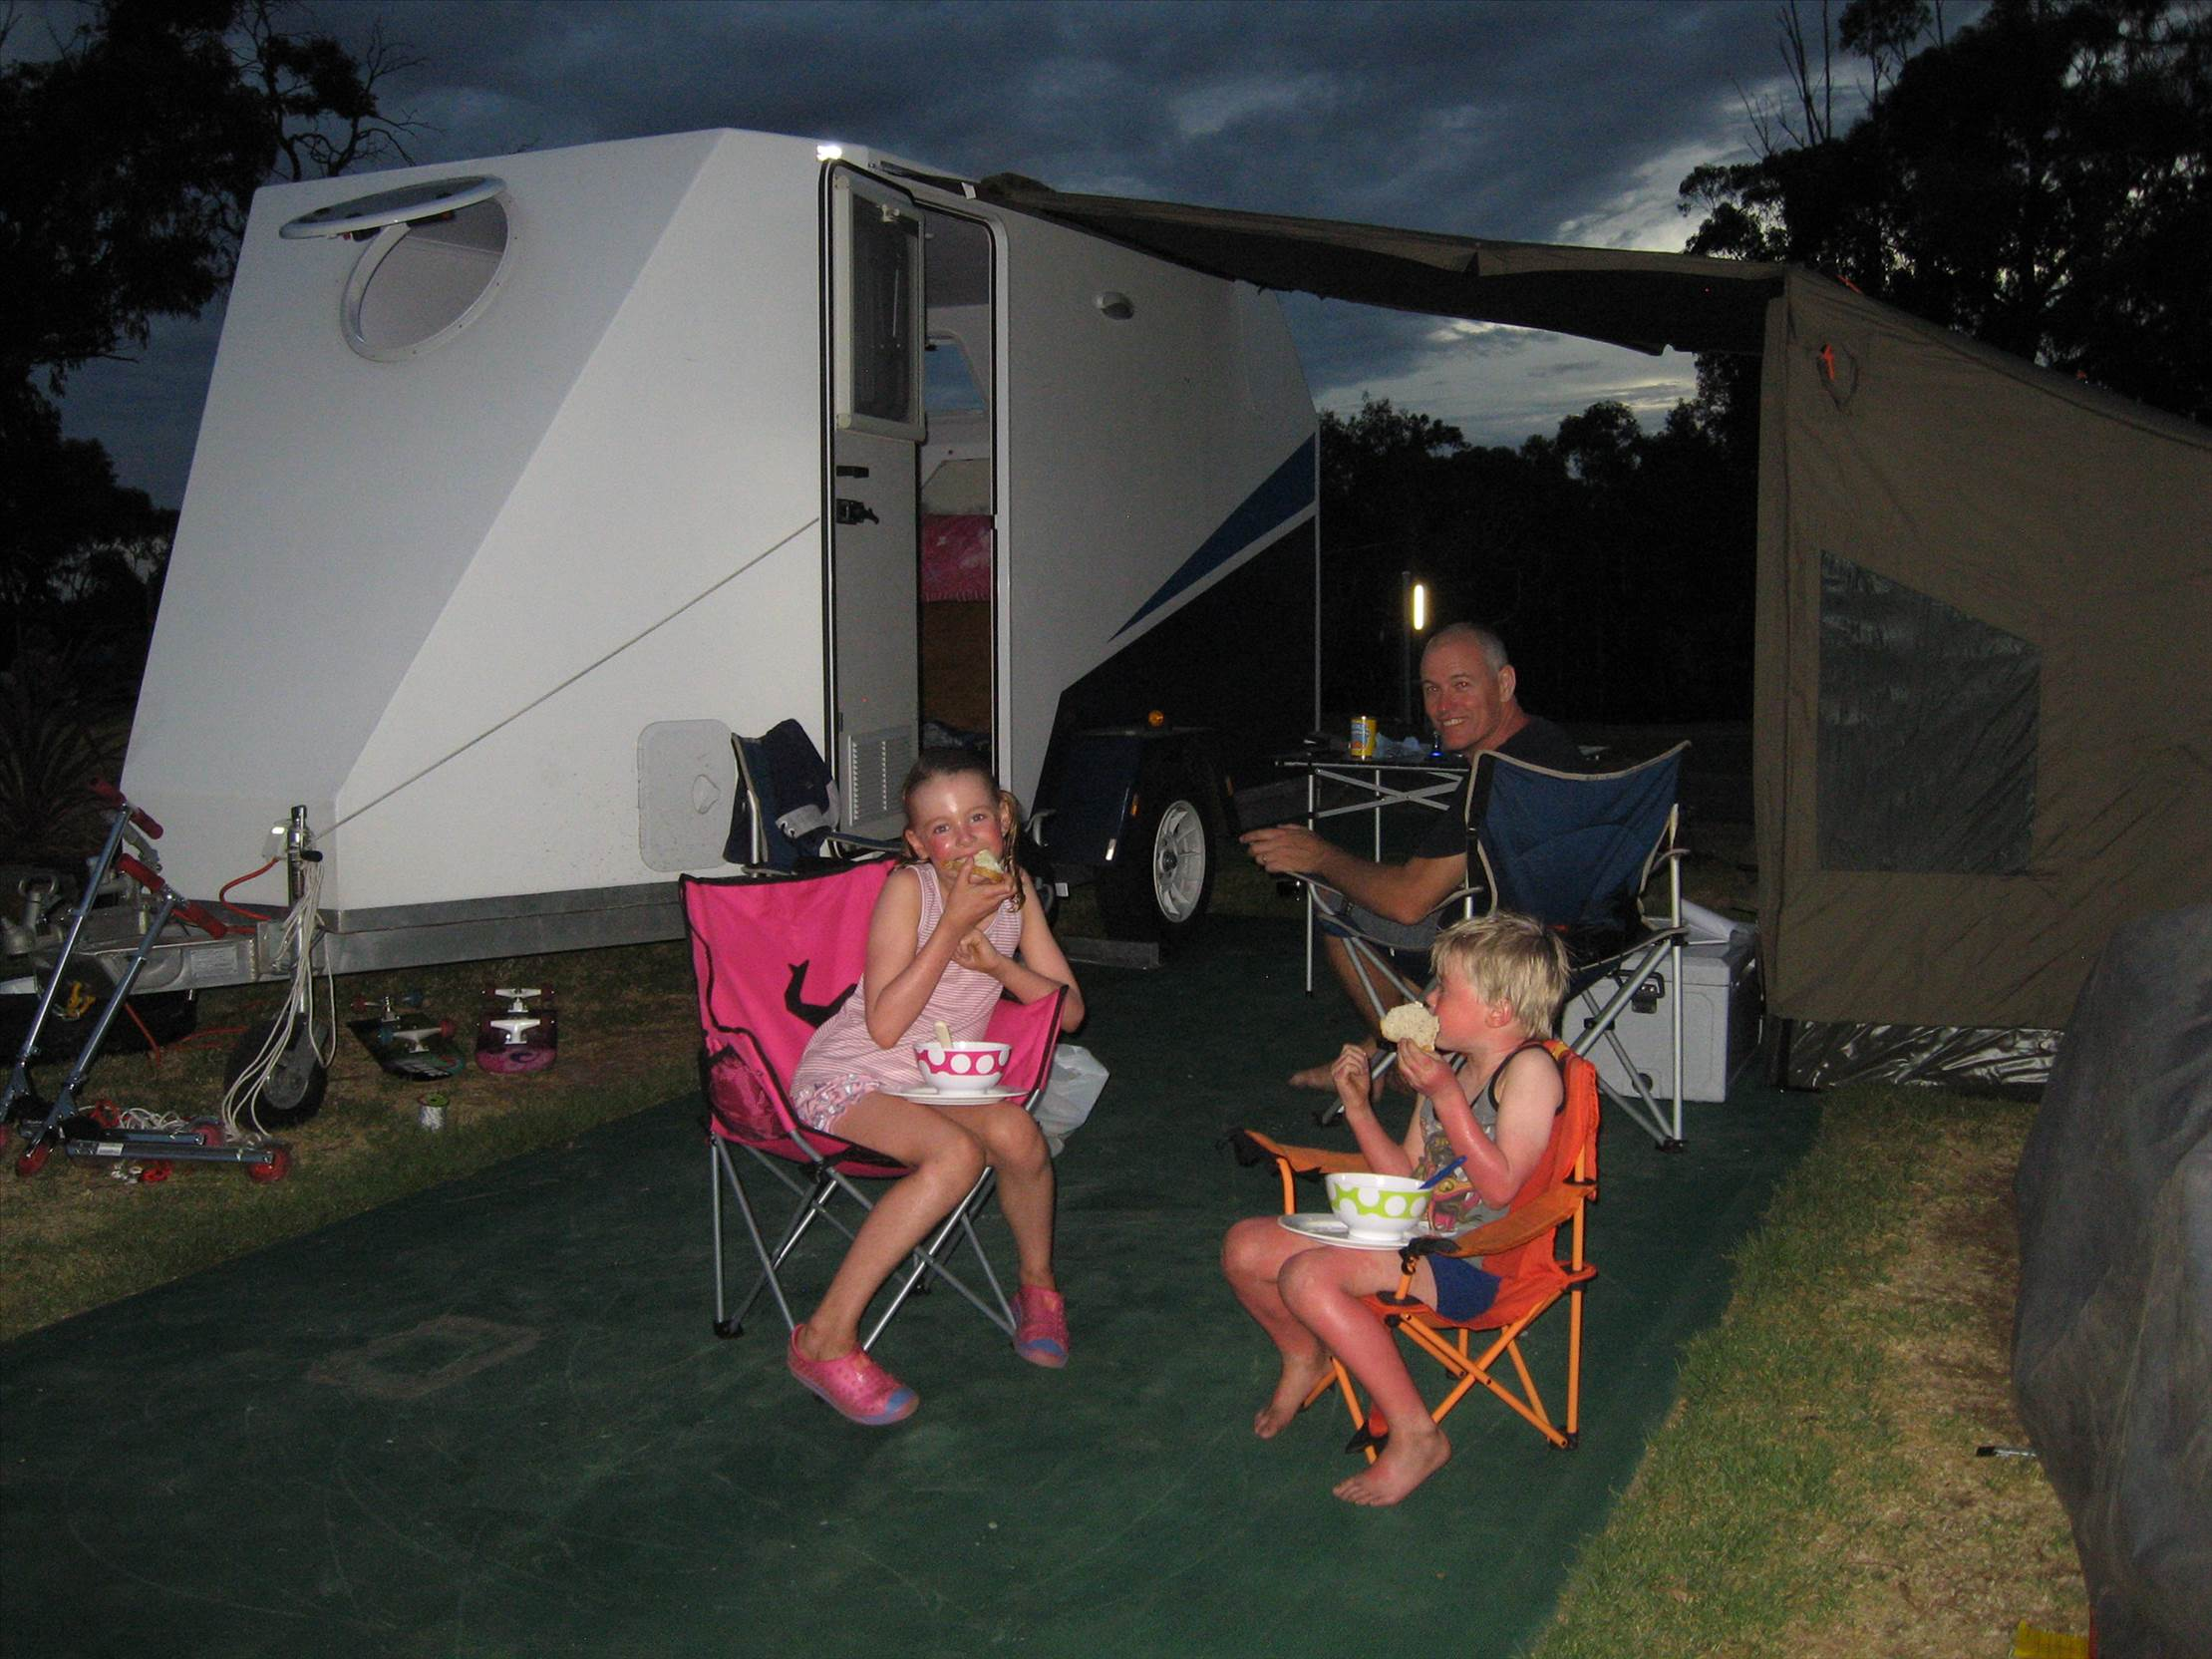 Hot teens camping with toys — 5